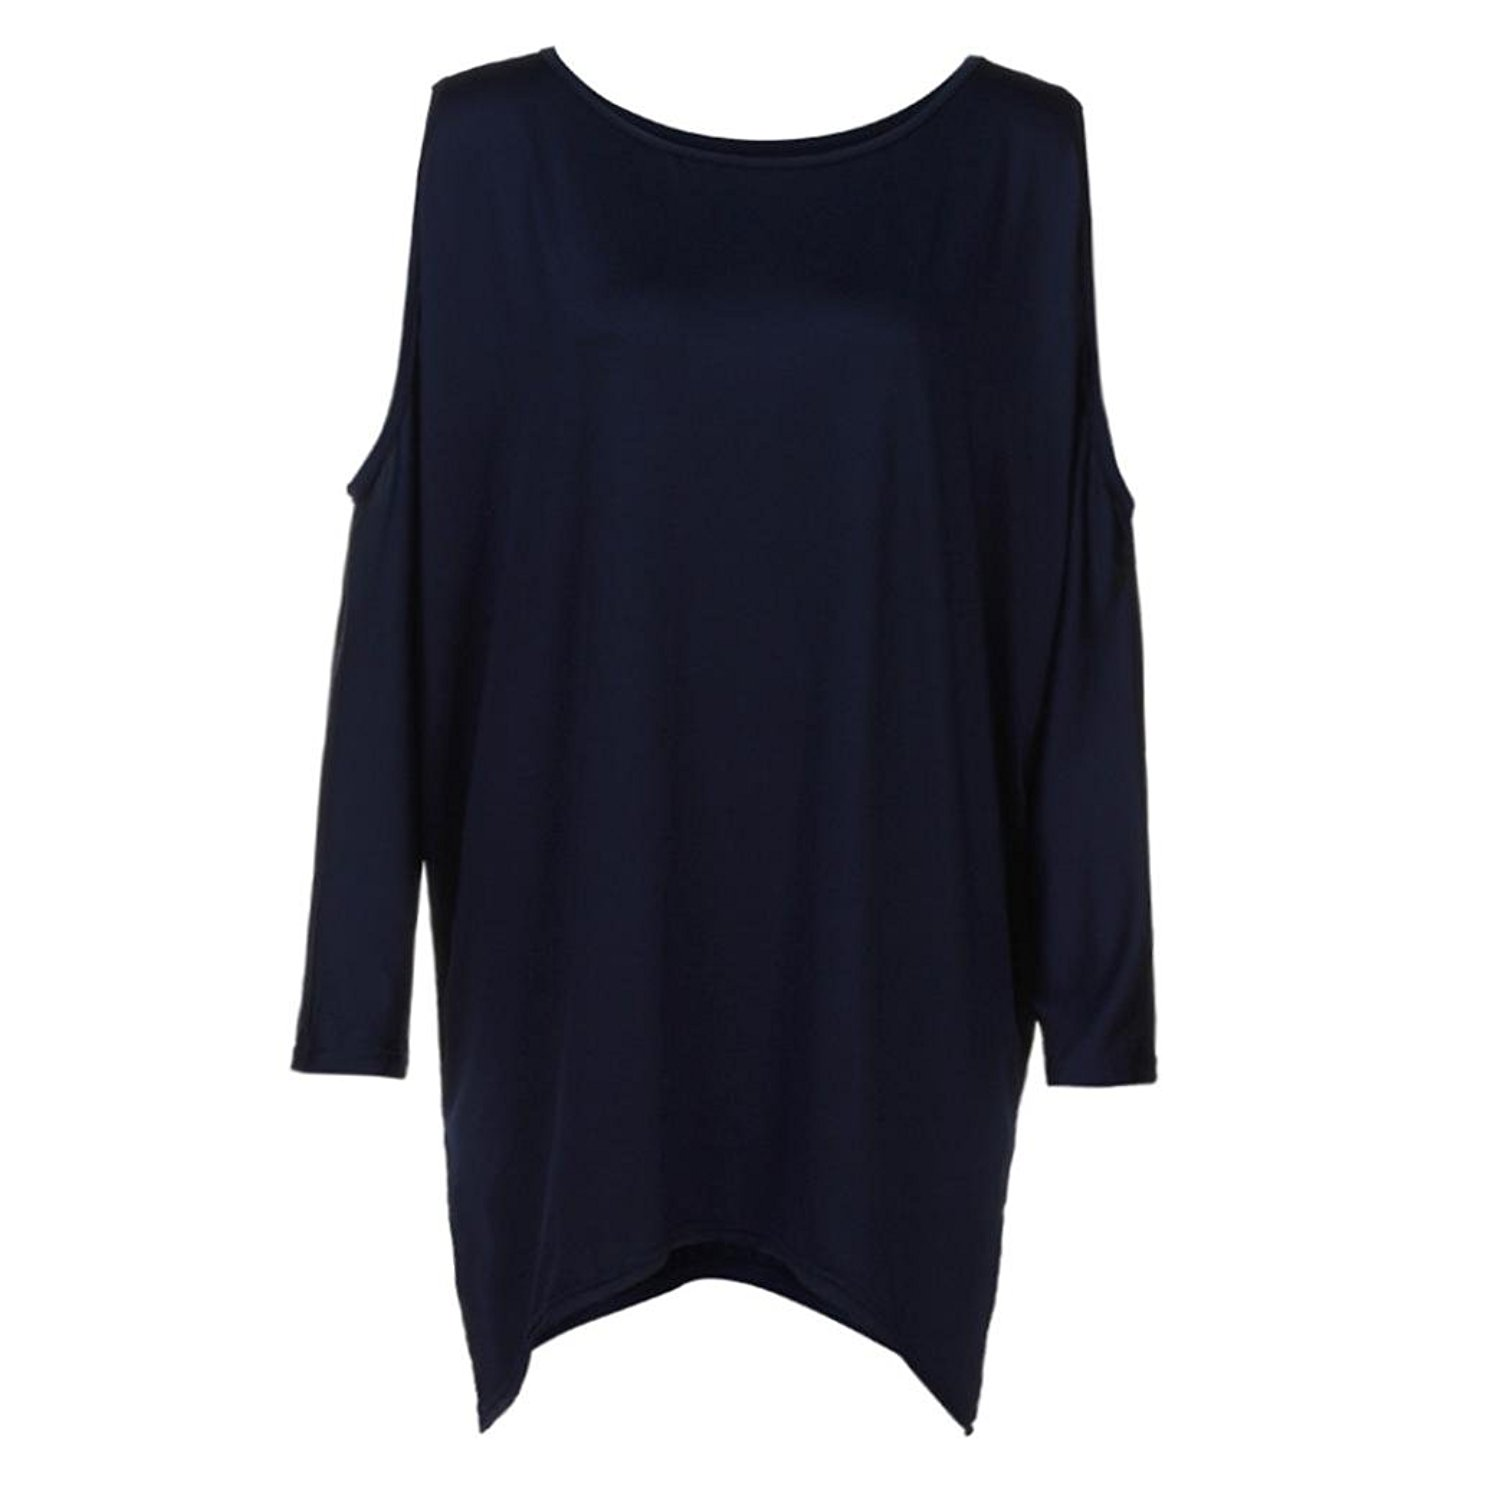 MOONHOUSE Womens Solid Strapless O-Neck Cut Shoulder Baggy Tops Sexy Shirts Loose Long Sleeve Pullover Blouse Plus Size